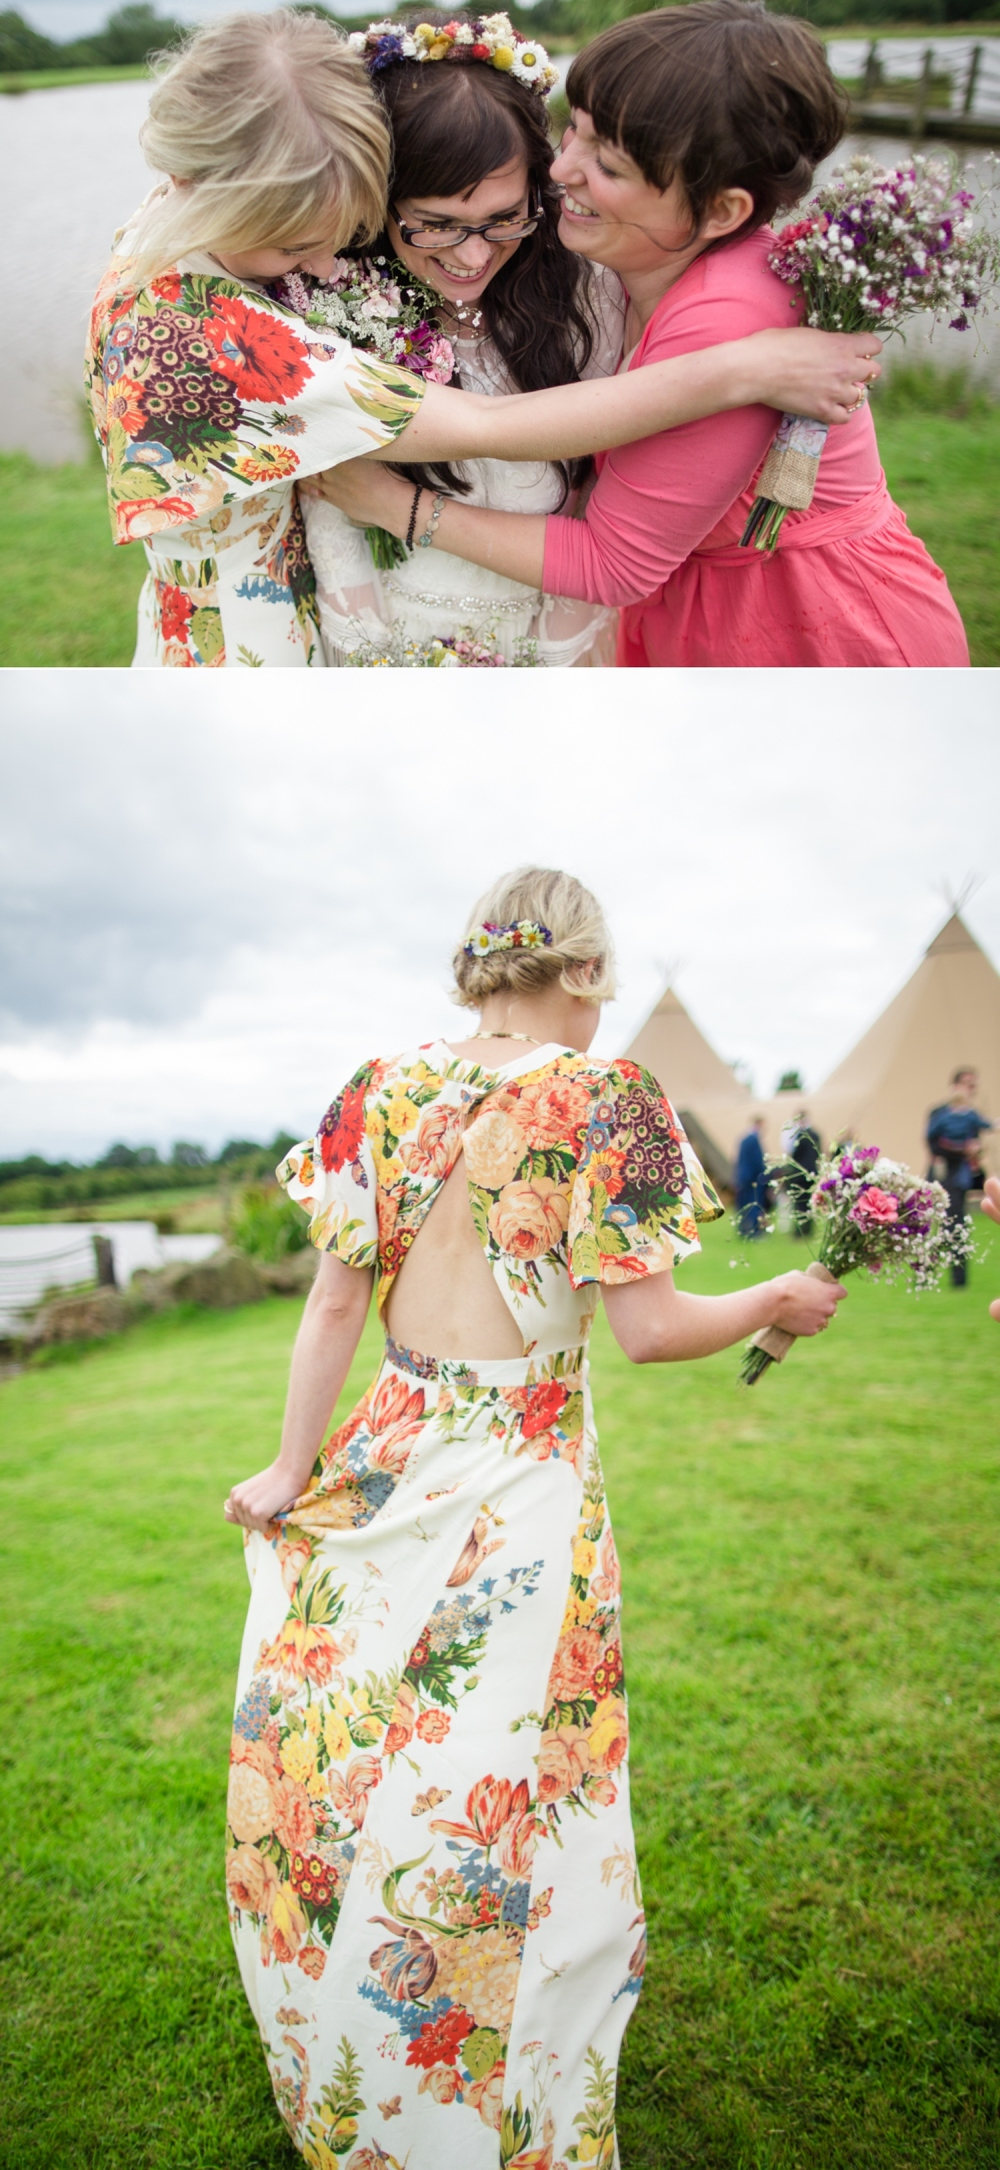 Somerset Wedding Photographer Elly & Liam_0031.jpg